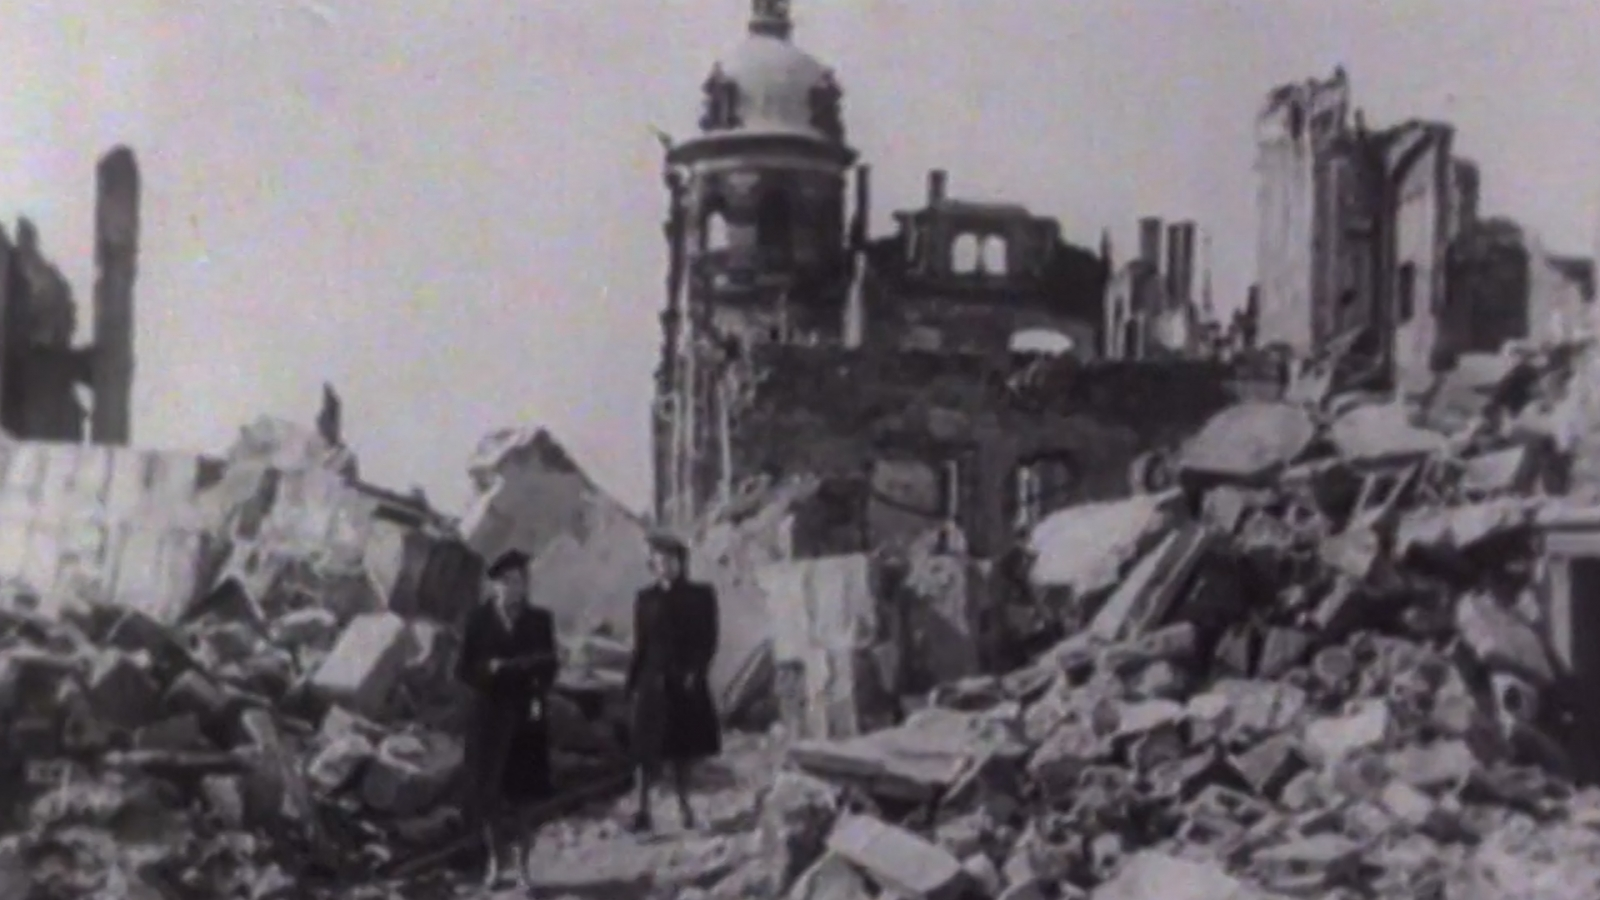 can the bombing of dresden be The bombing of dresden was a british/american aerial bombing attack on the city of dresden, the capital of the german state of saxony, during world war ii in the european theatre.